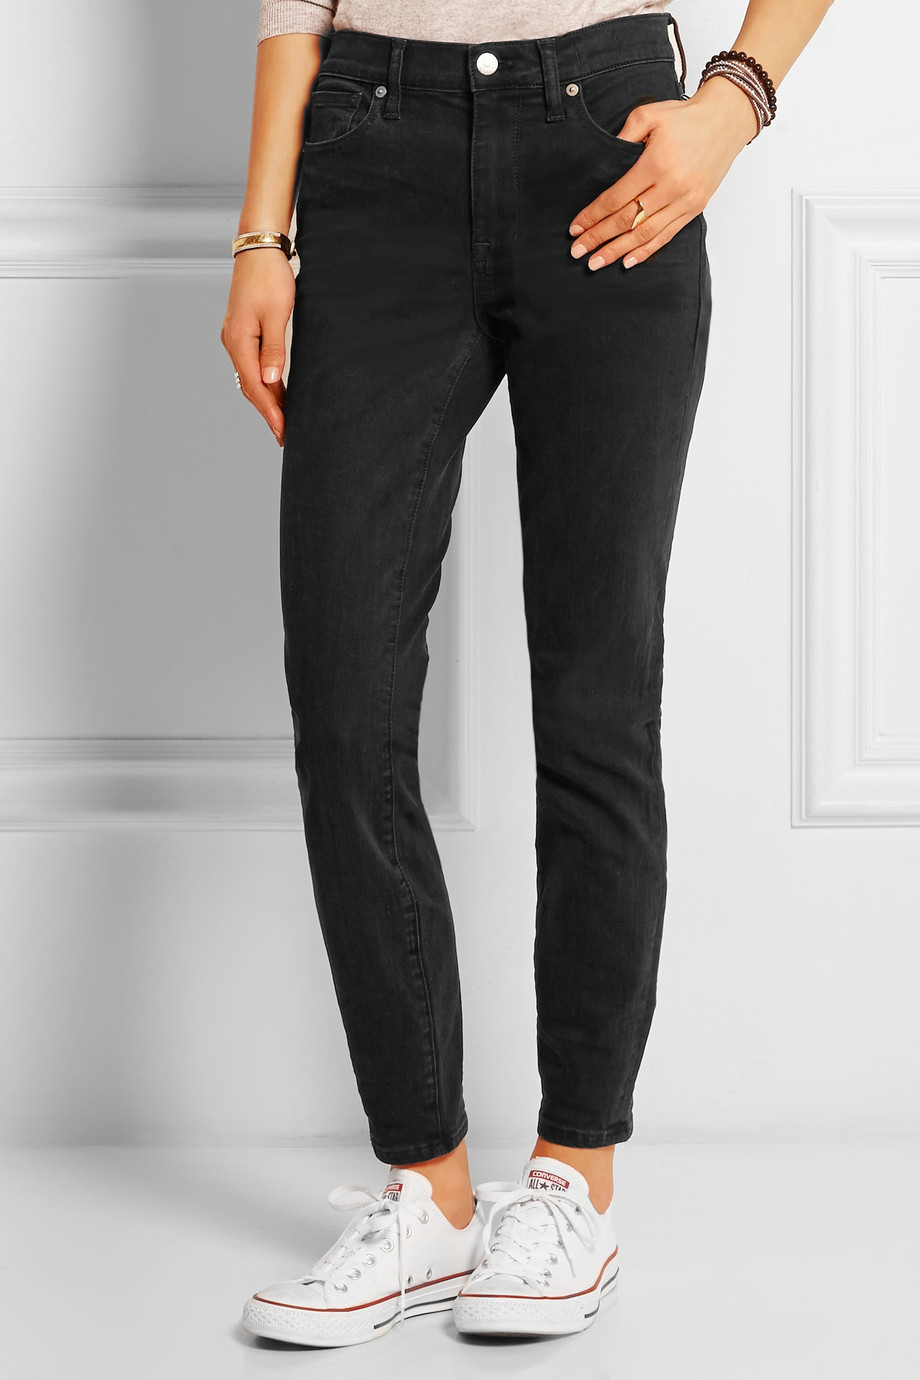 Madewell The High Riser Skinny Jeans in Black